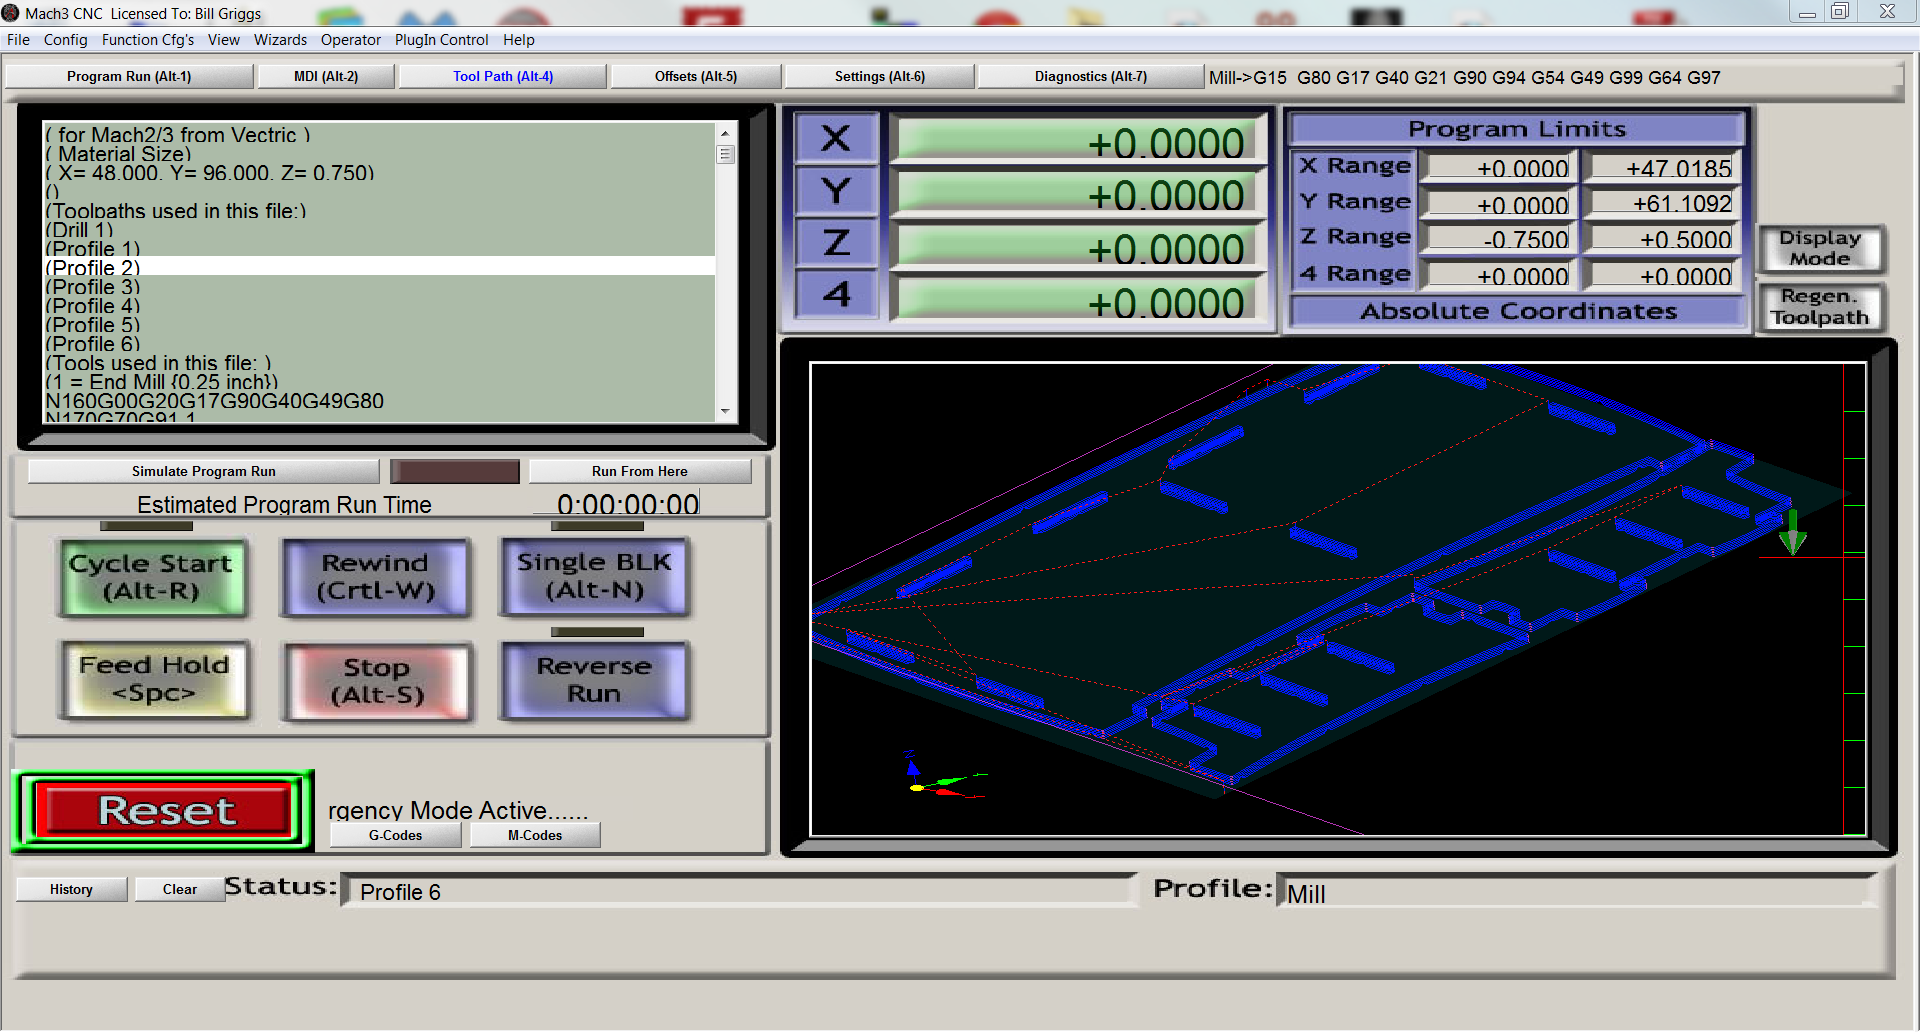 Mach3 Cnc Control Software For Windows 32 Bit Systems